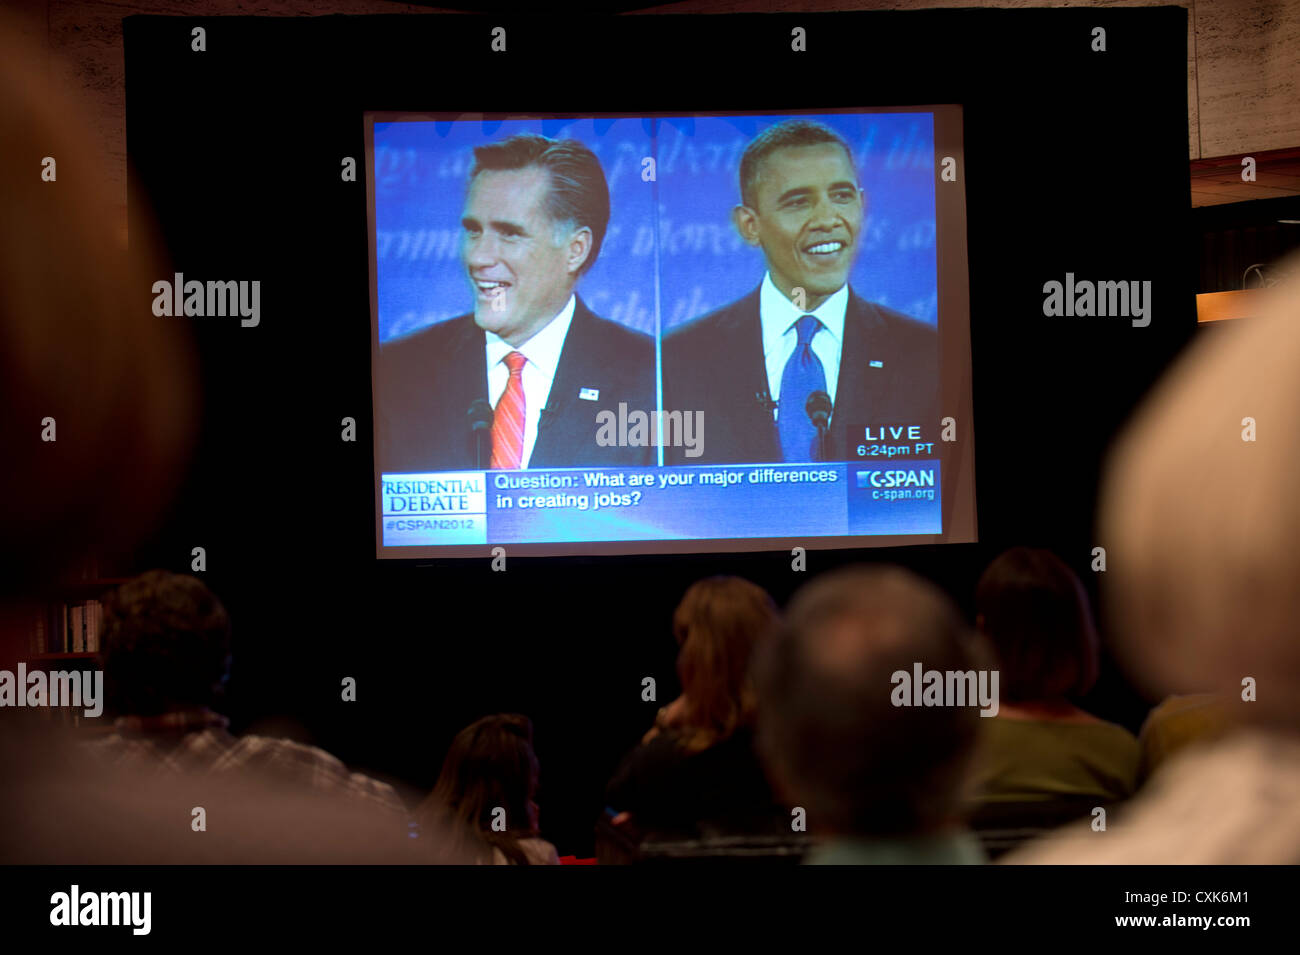 Likely voters watch large TV screen showing televised debate between US presidential candidates Barack Obama and - Stock Image